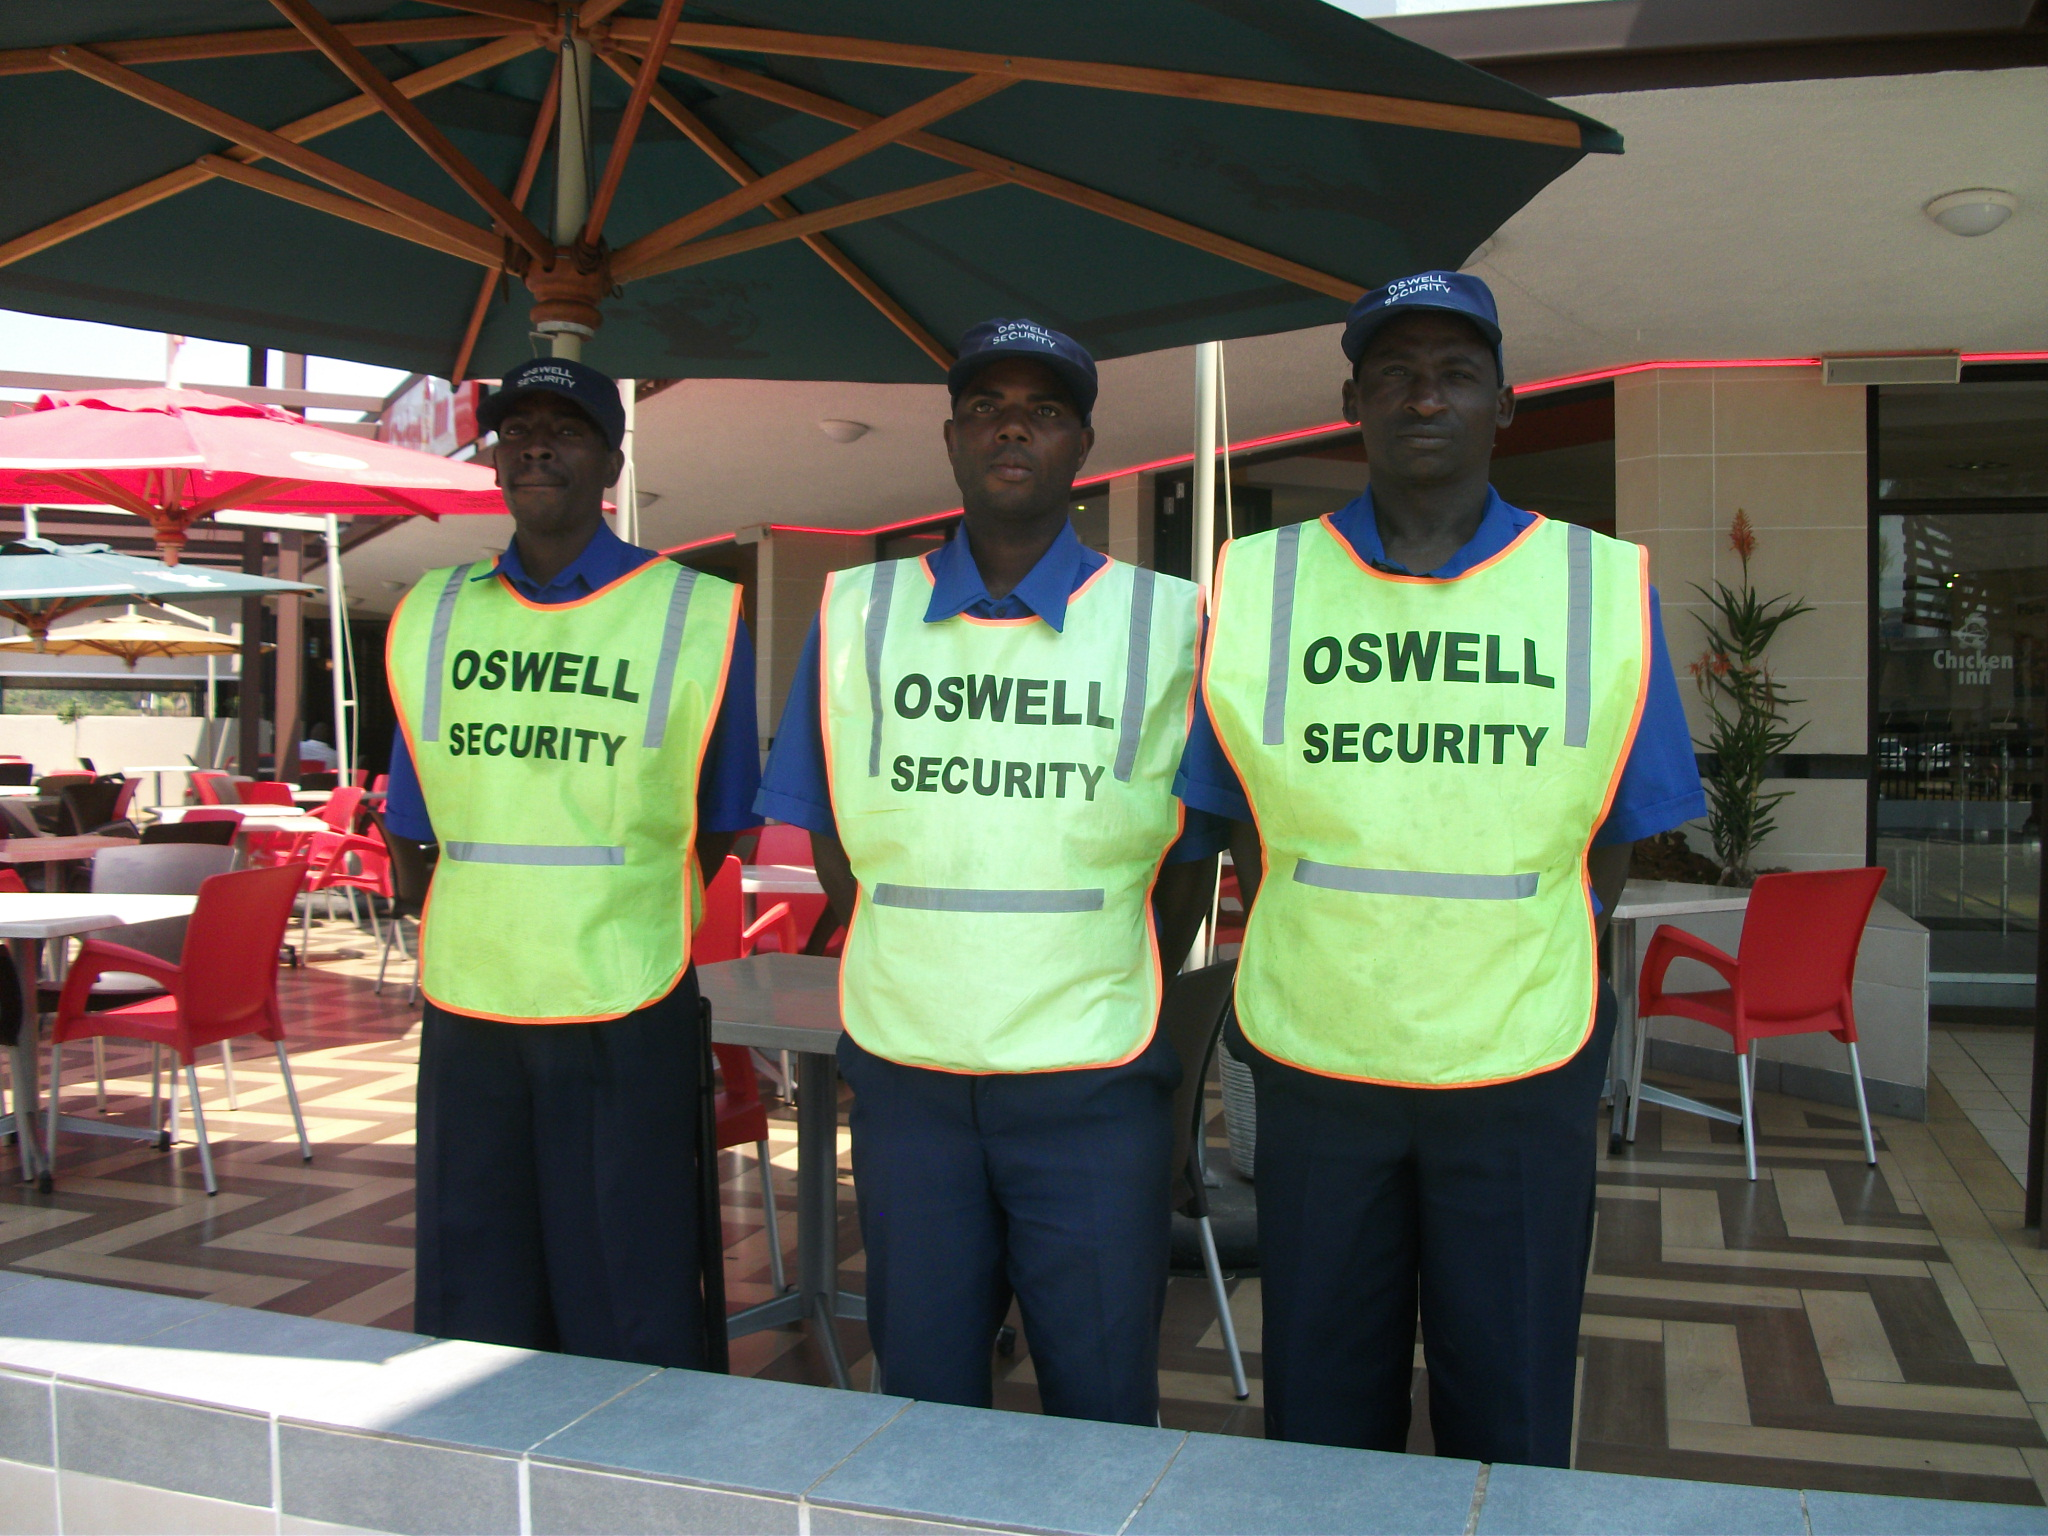 Oswell Security officers on duty